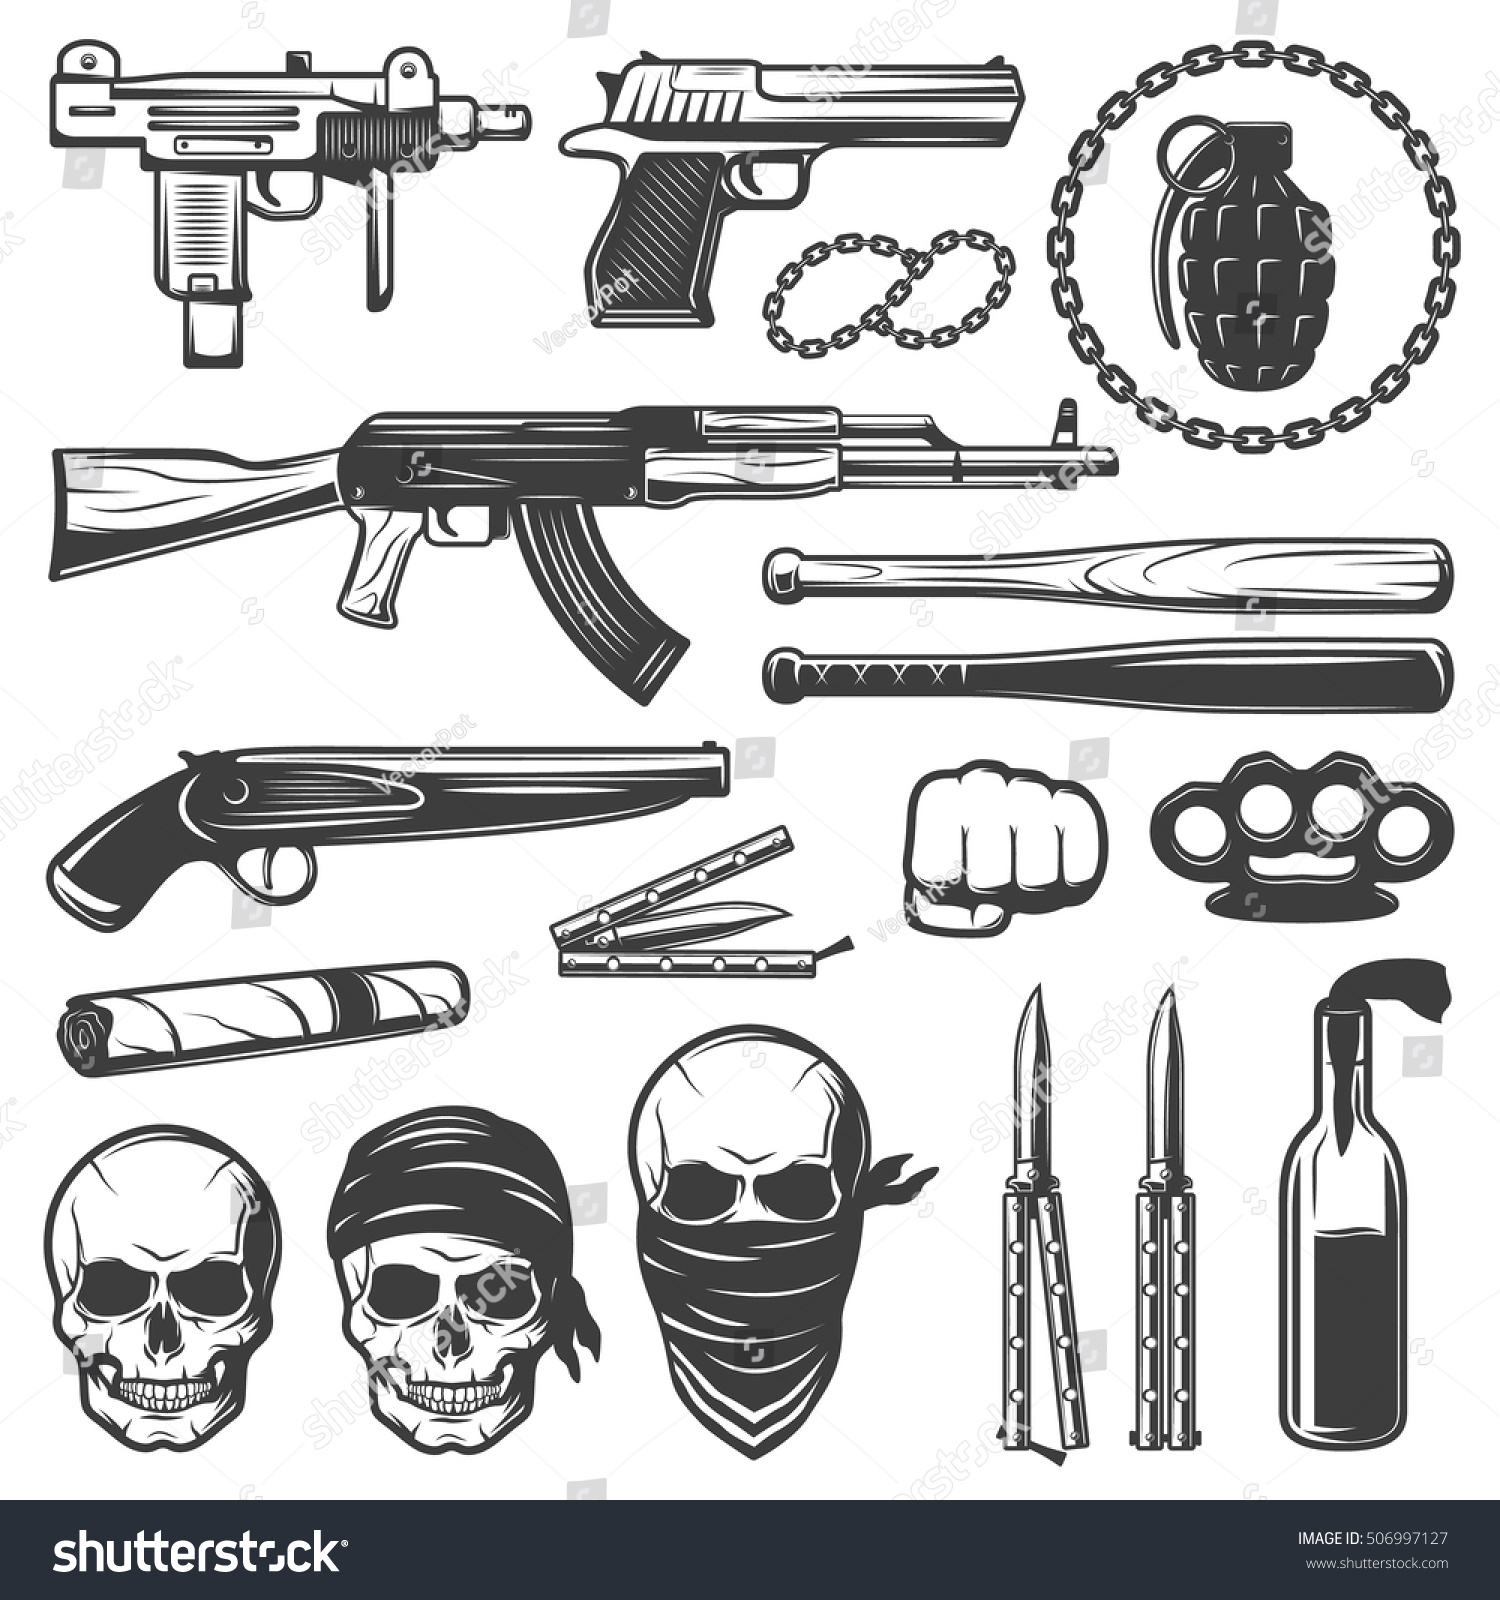 Set various isolated gangster symbols weapons stock vector set with various isolated gangster symbols with weapons guns bats knives knuckleduster and gang skulls flat biocorpaavc